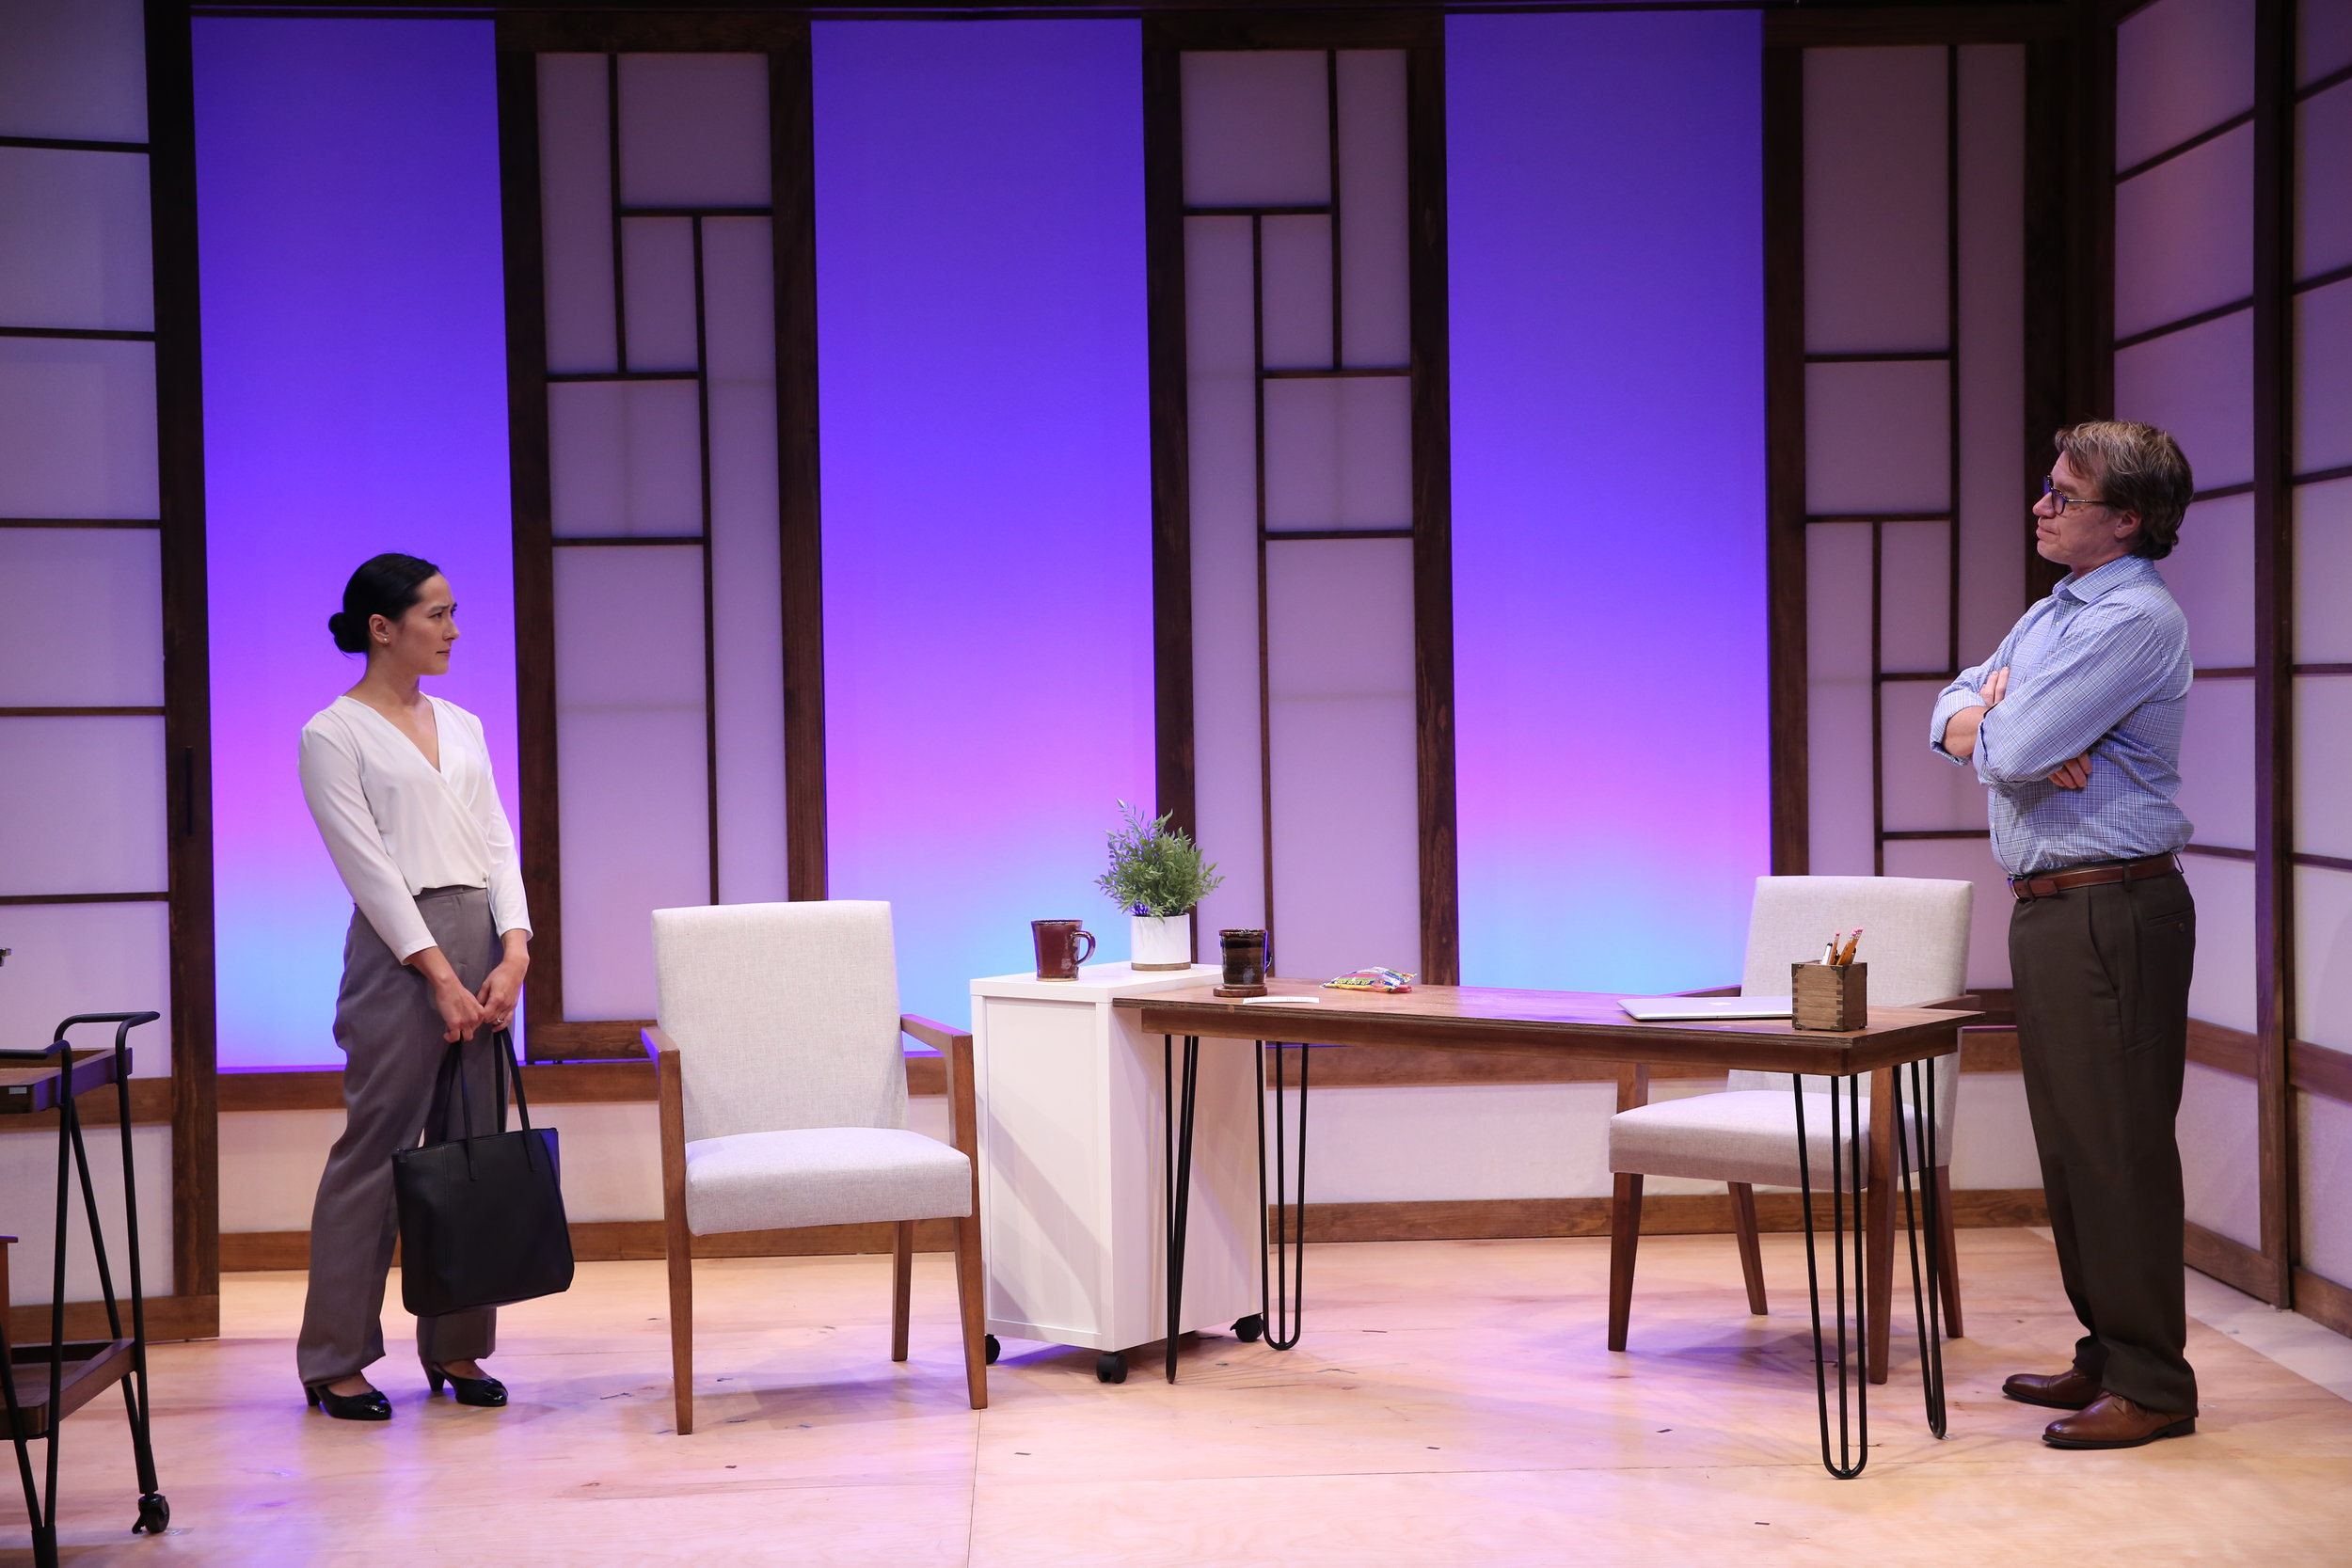 L-R: Jennifer Ikeda and Mark Boyett in A WOMAN by Chris Cragin-Day, part of Summer Shorts 2017 at 59E59 Theaters. Photo by Carol Rosegg